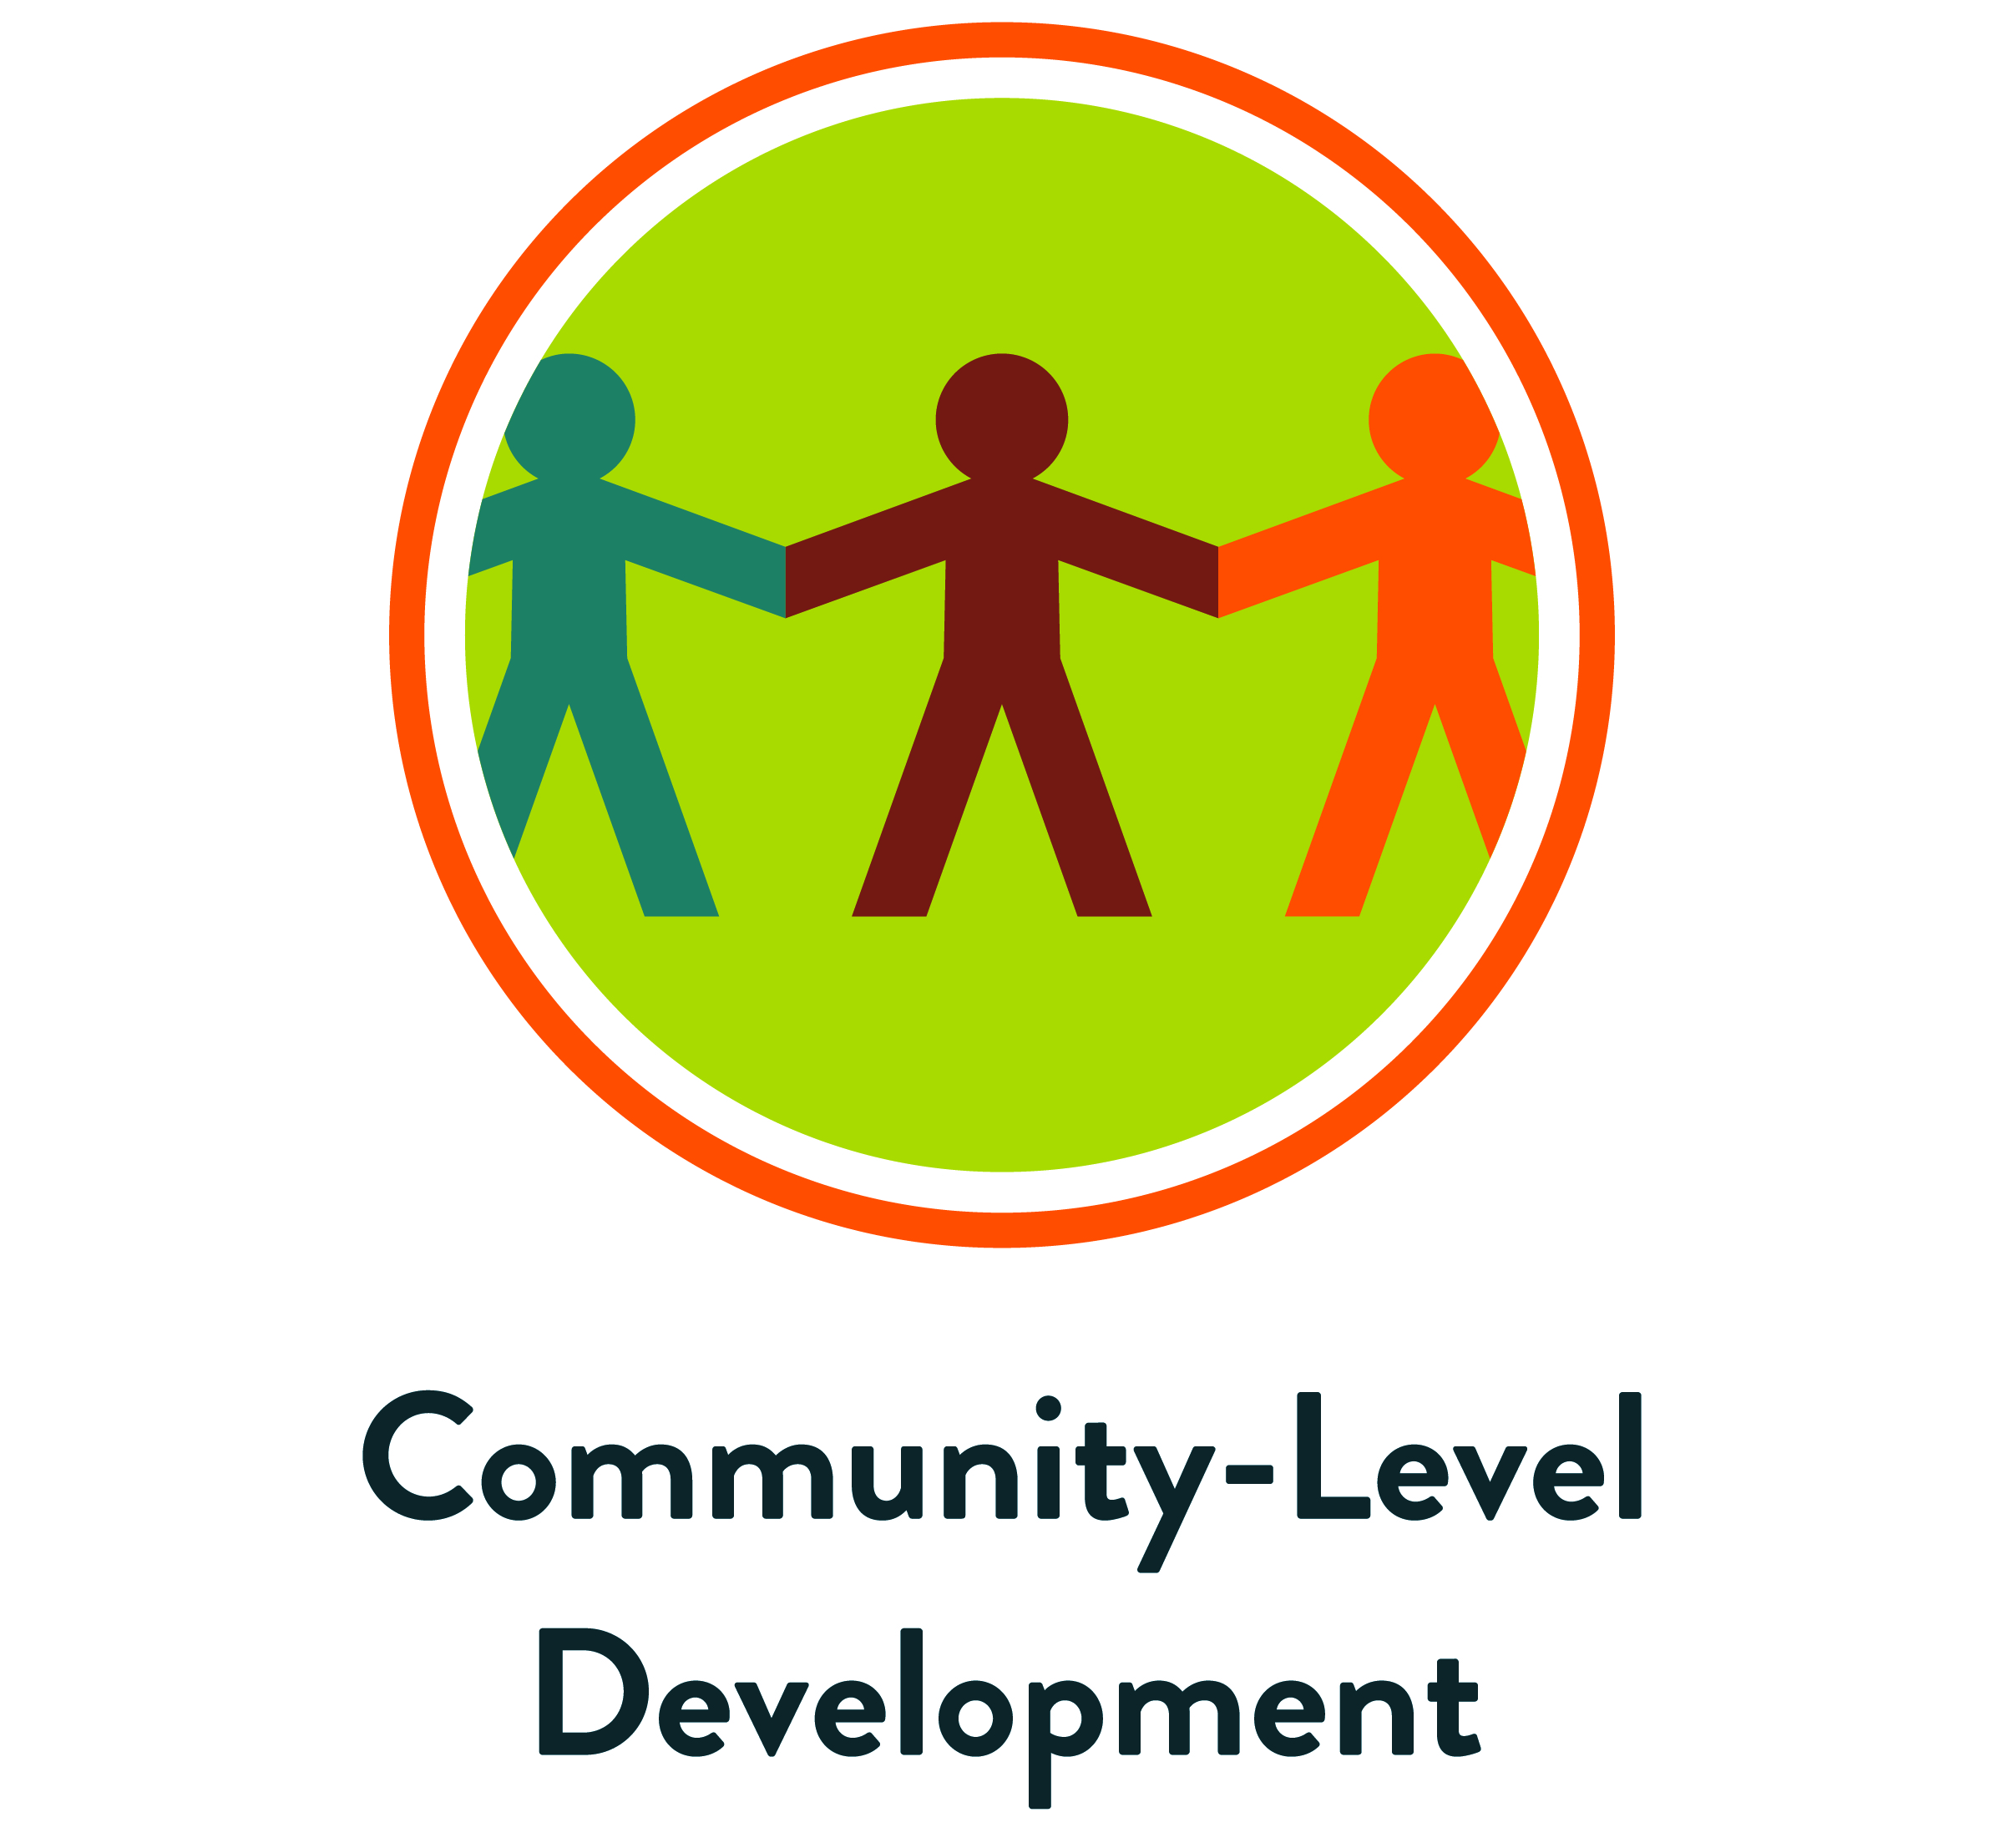 Community-Level Development